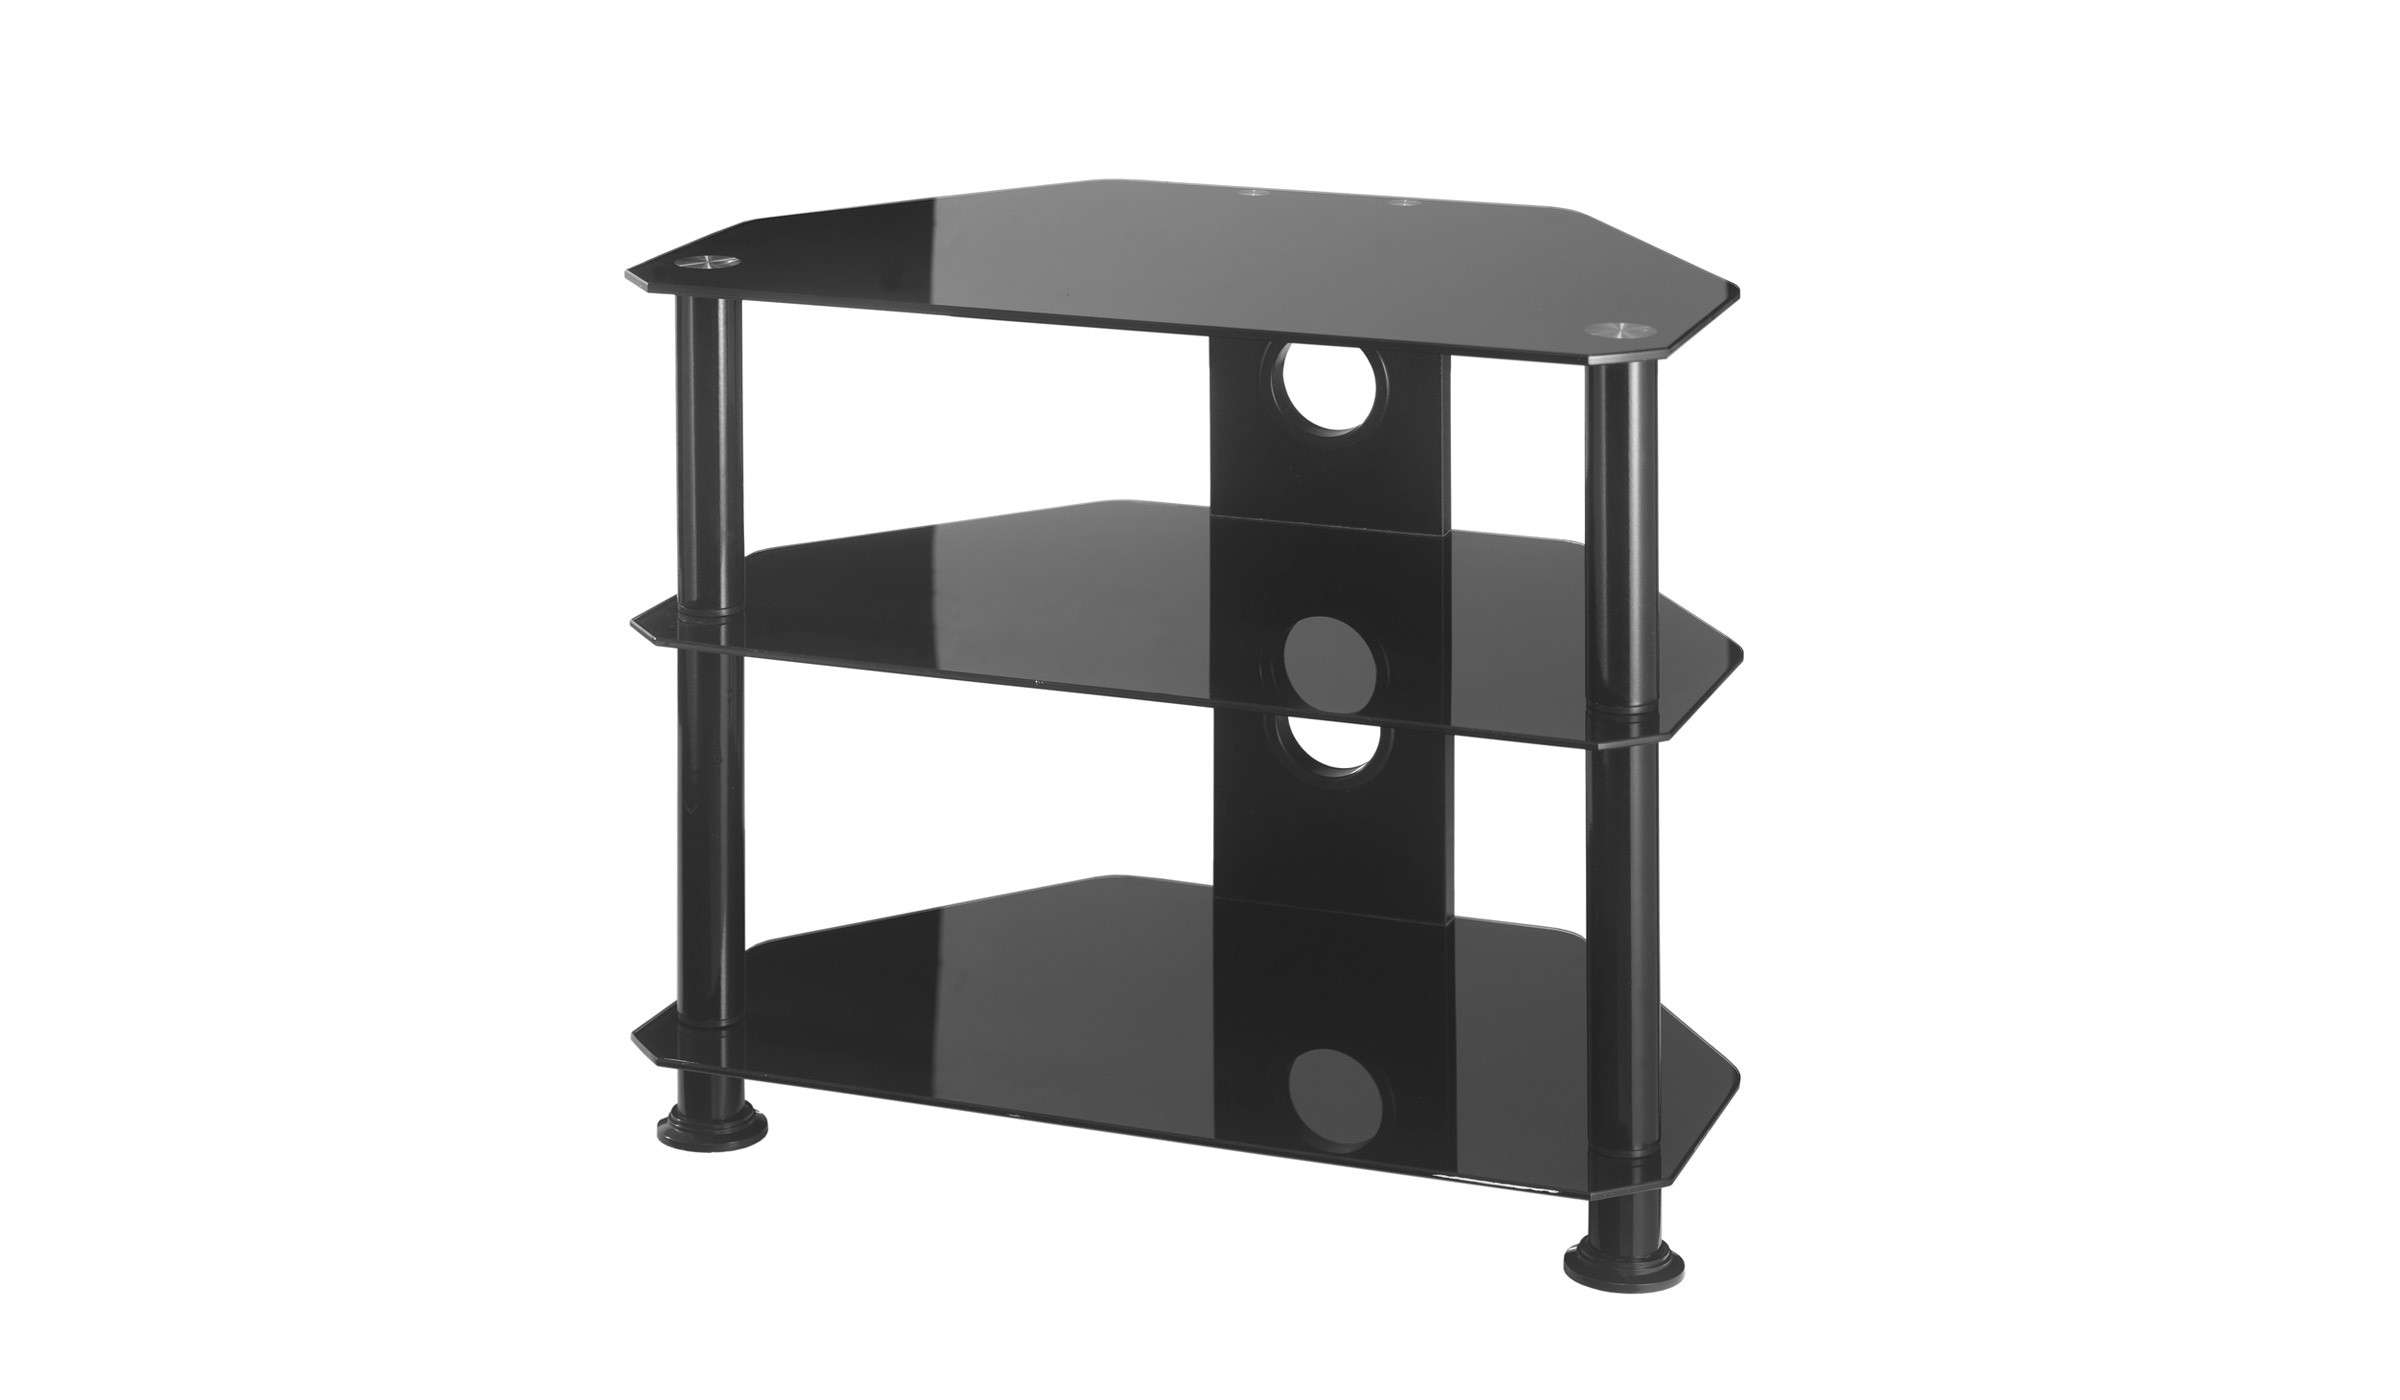 Small Glass Corner Tv Stand Up To 26 Inch Tv | Mmt Db600 In Black Glass Tv Stands (View 5 of 15)